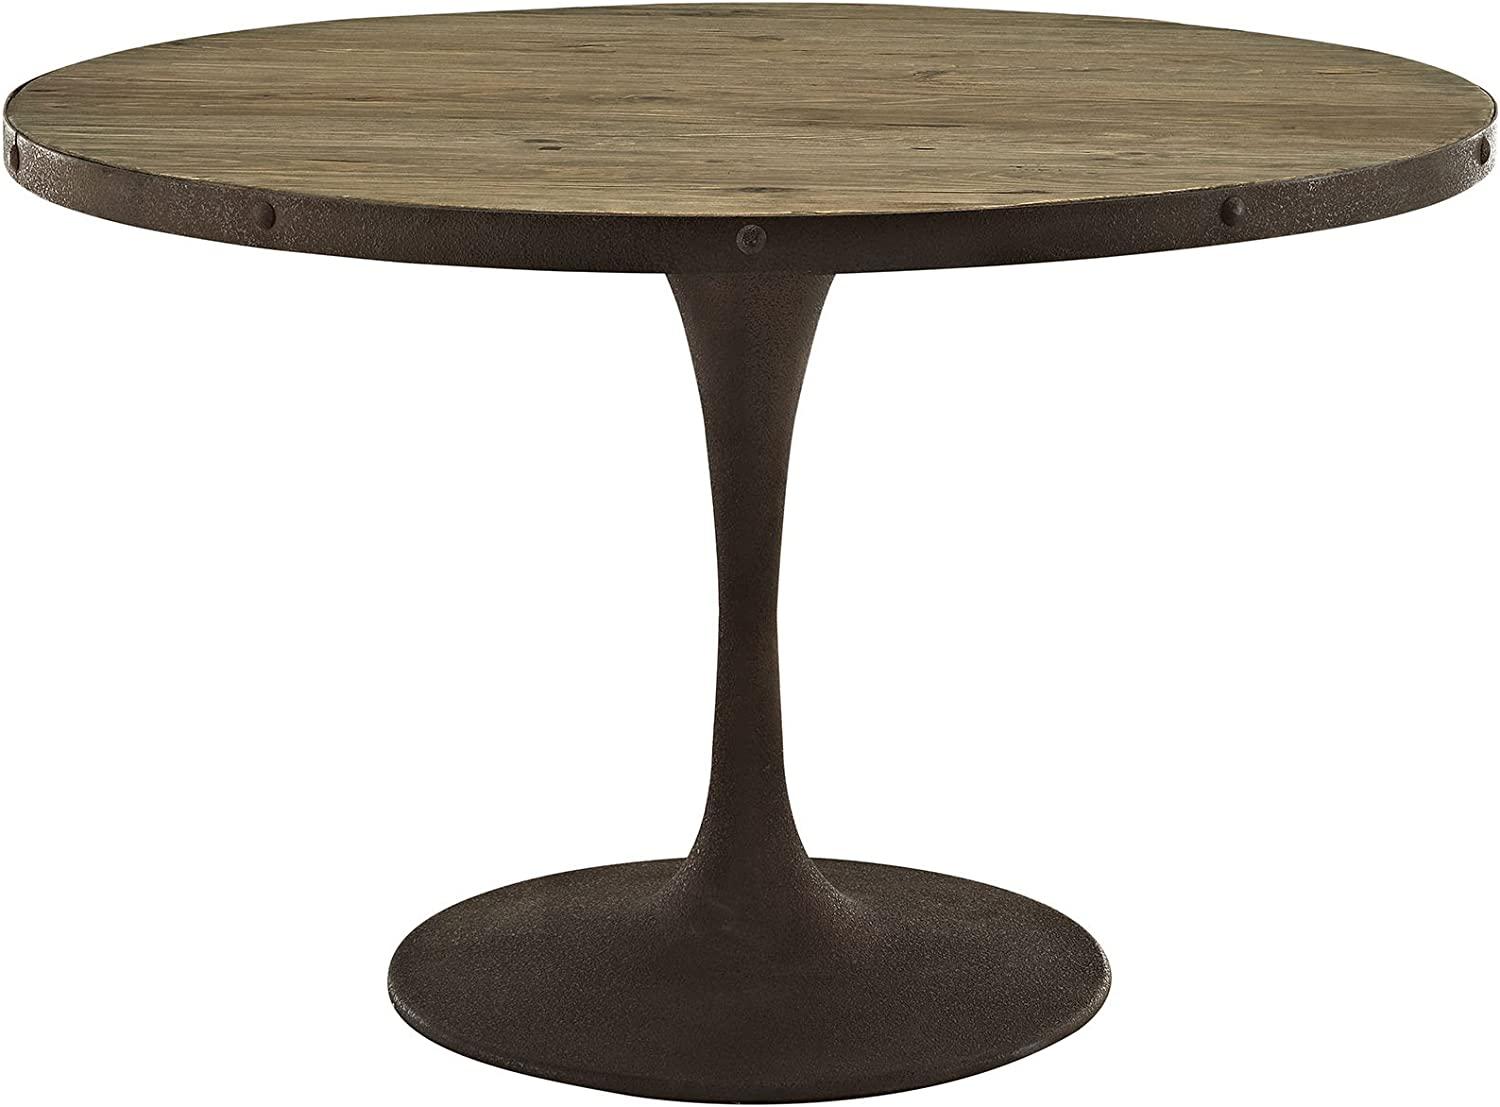 Amazon Com Modway Drive 48 Rustic Modern Farmhouse Pedestal Base Wood And Iron Round Kitchen And Dining Room Table In Brown Tables